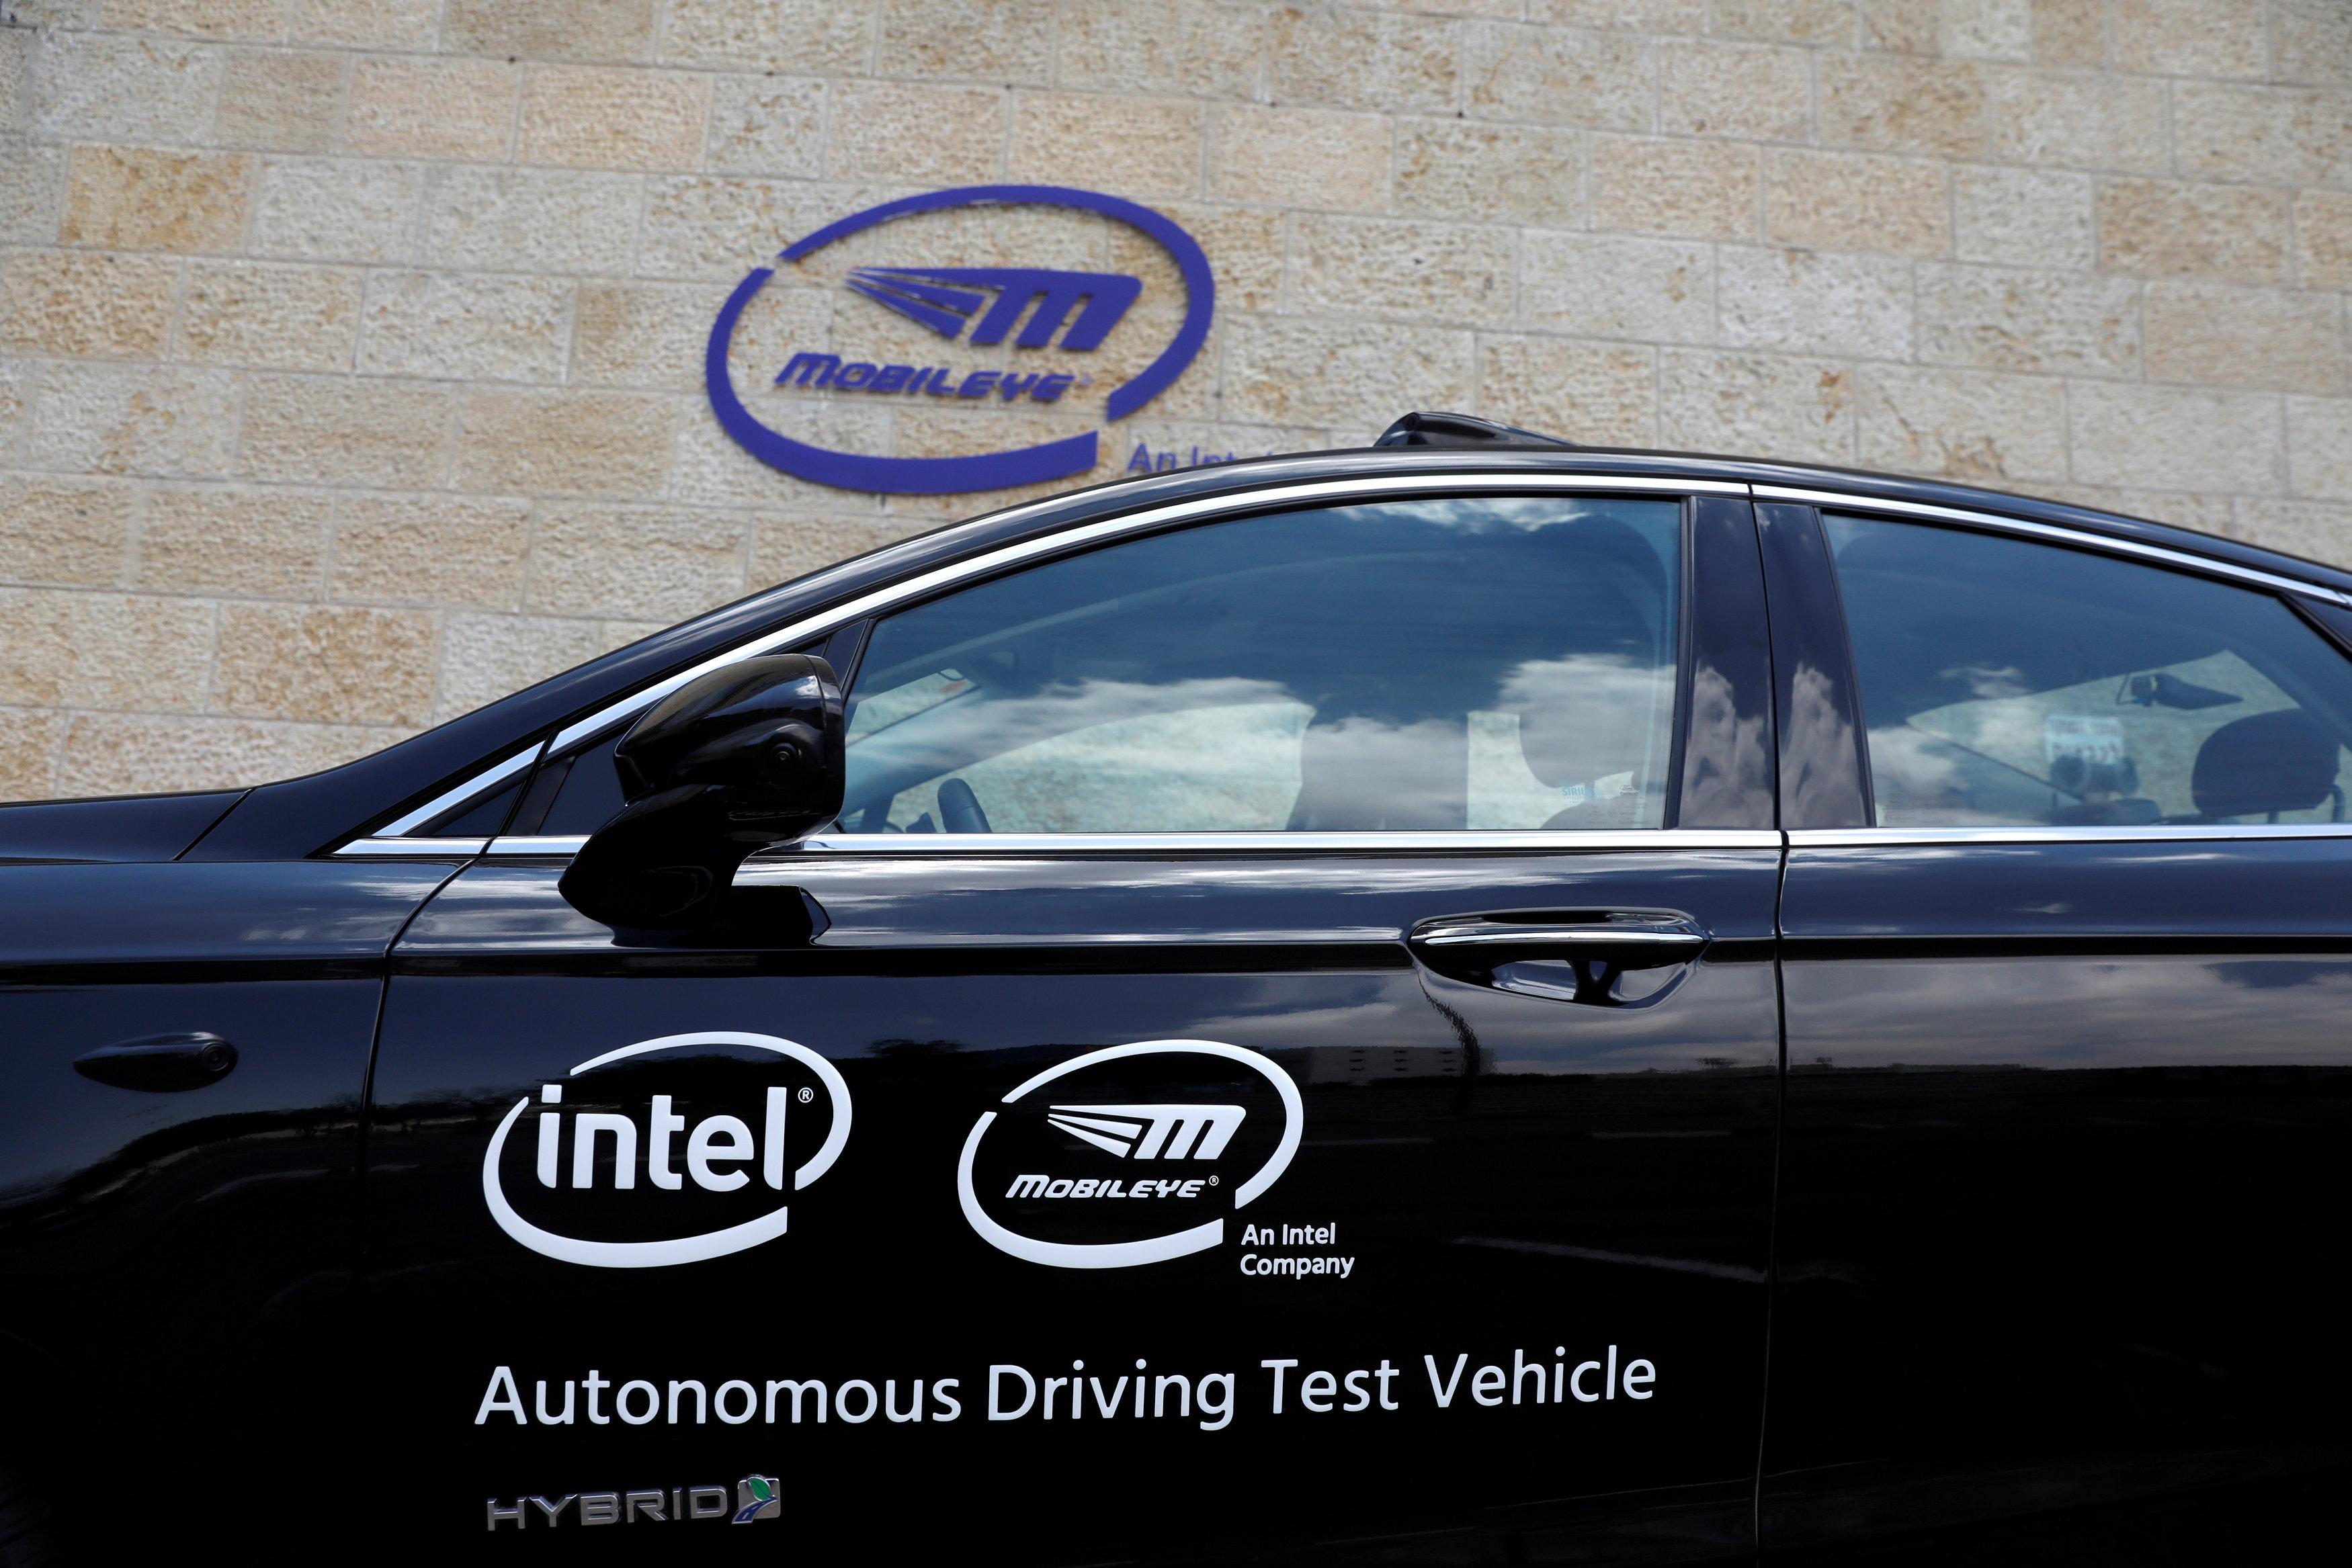 Exclusive: Intel's Mobileye gets self-driving tech deal for